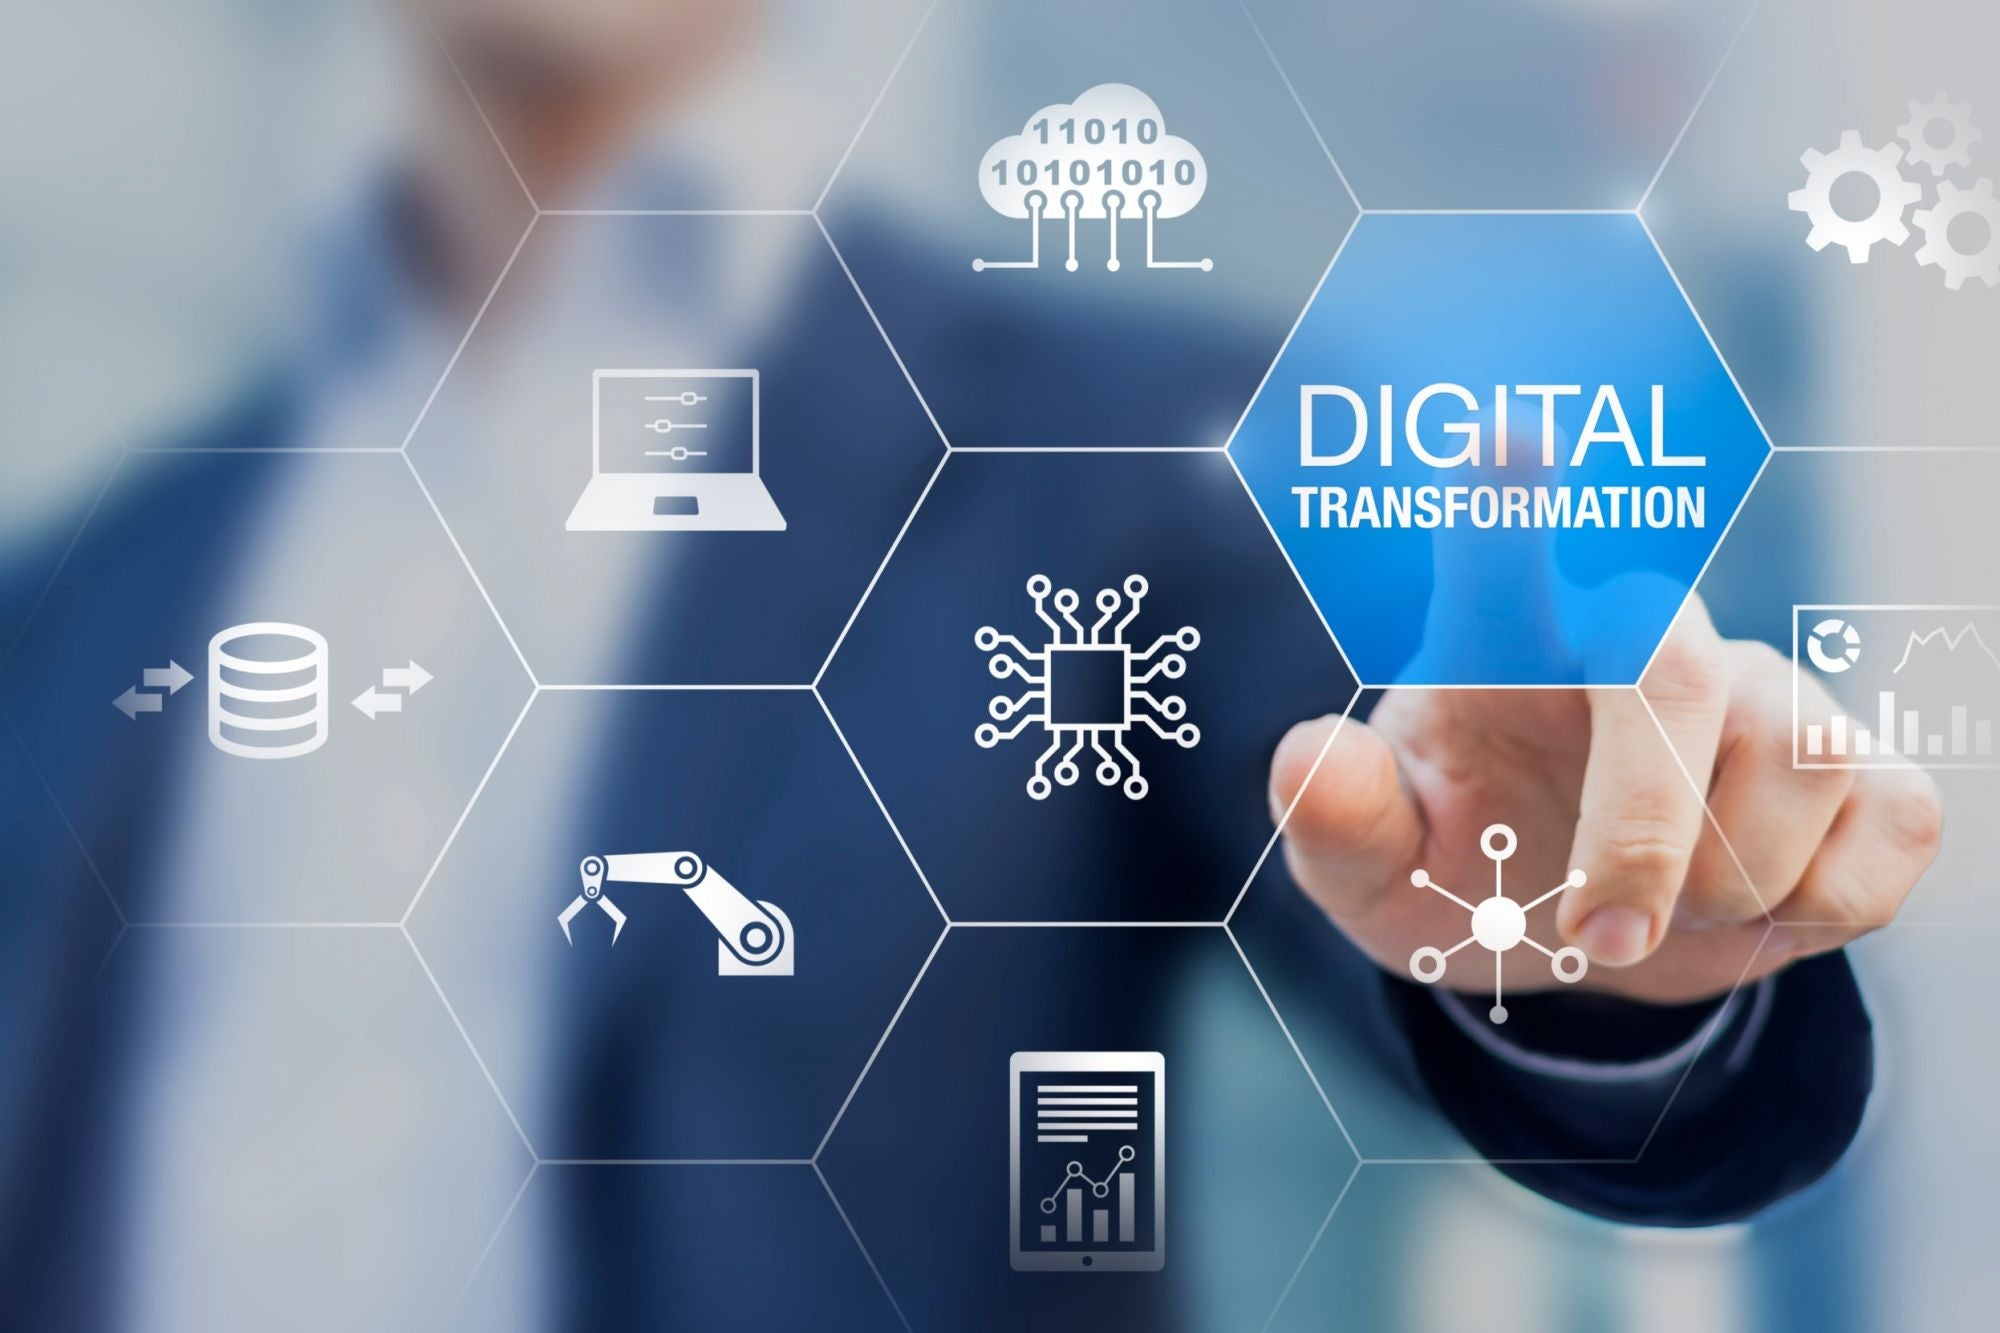 How Digitally Transformed Is Your Business?